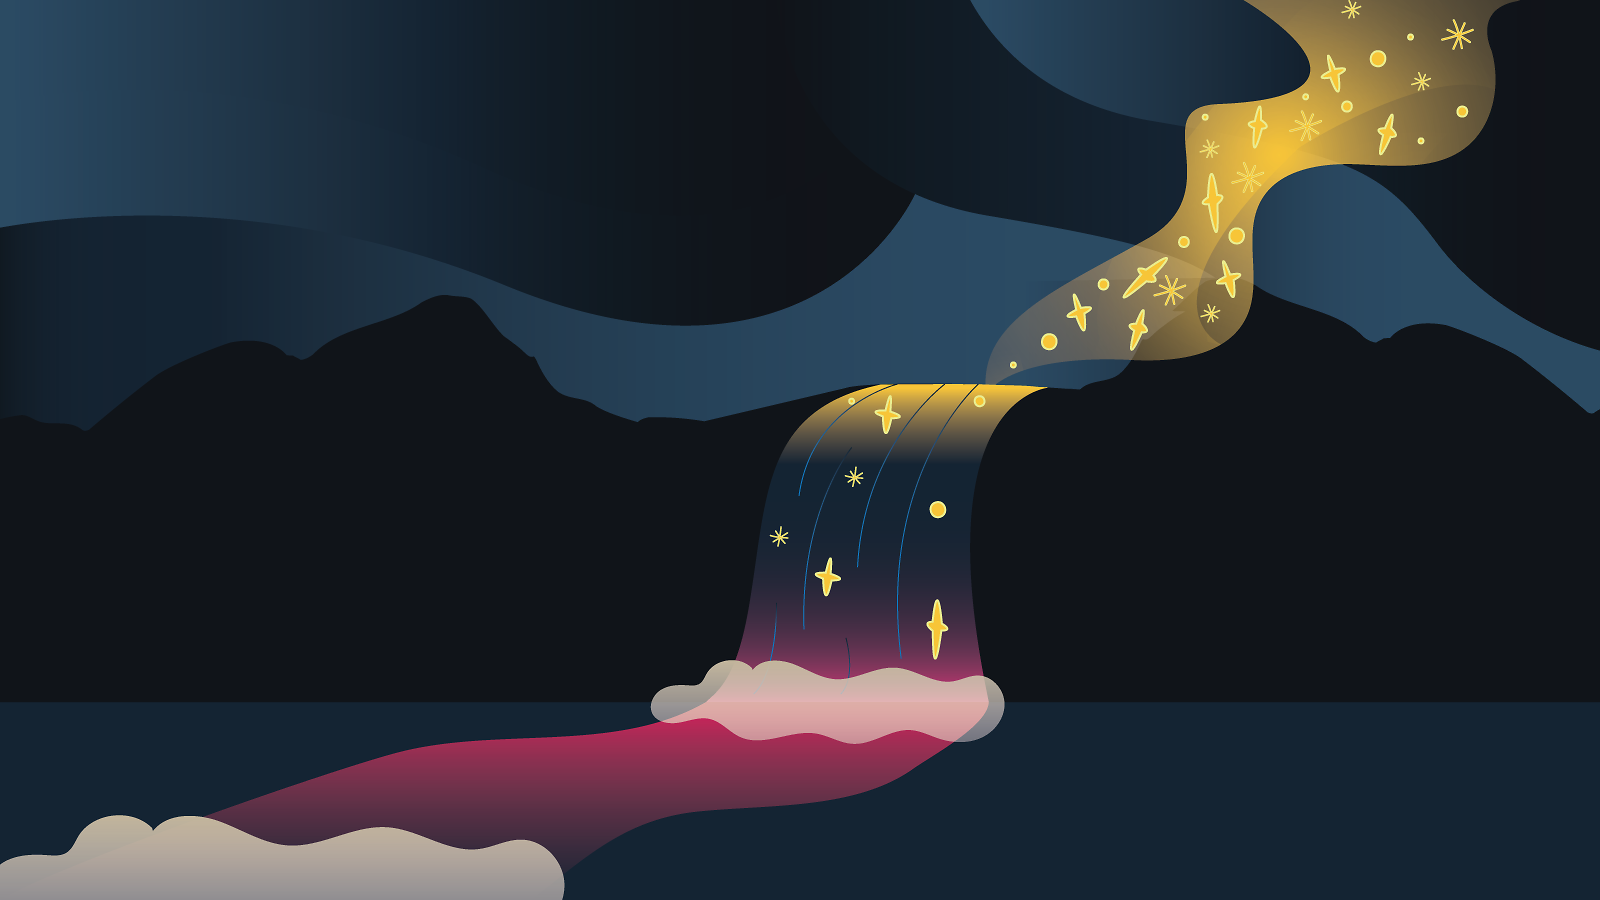 Illustration of river of stars in the sky flows into waterfall and river